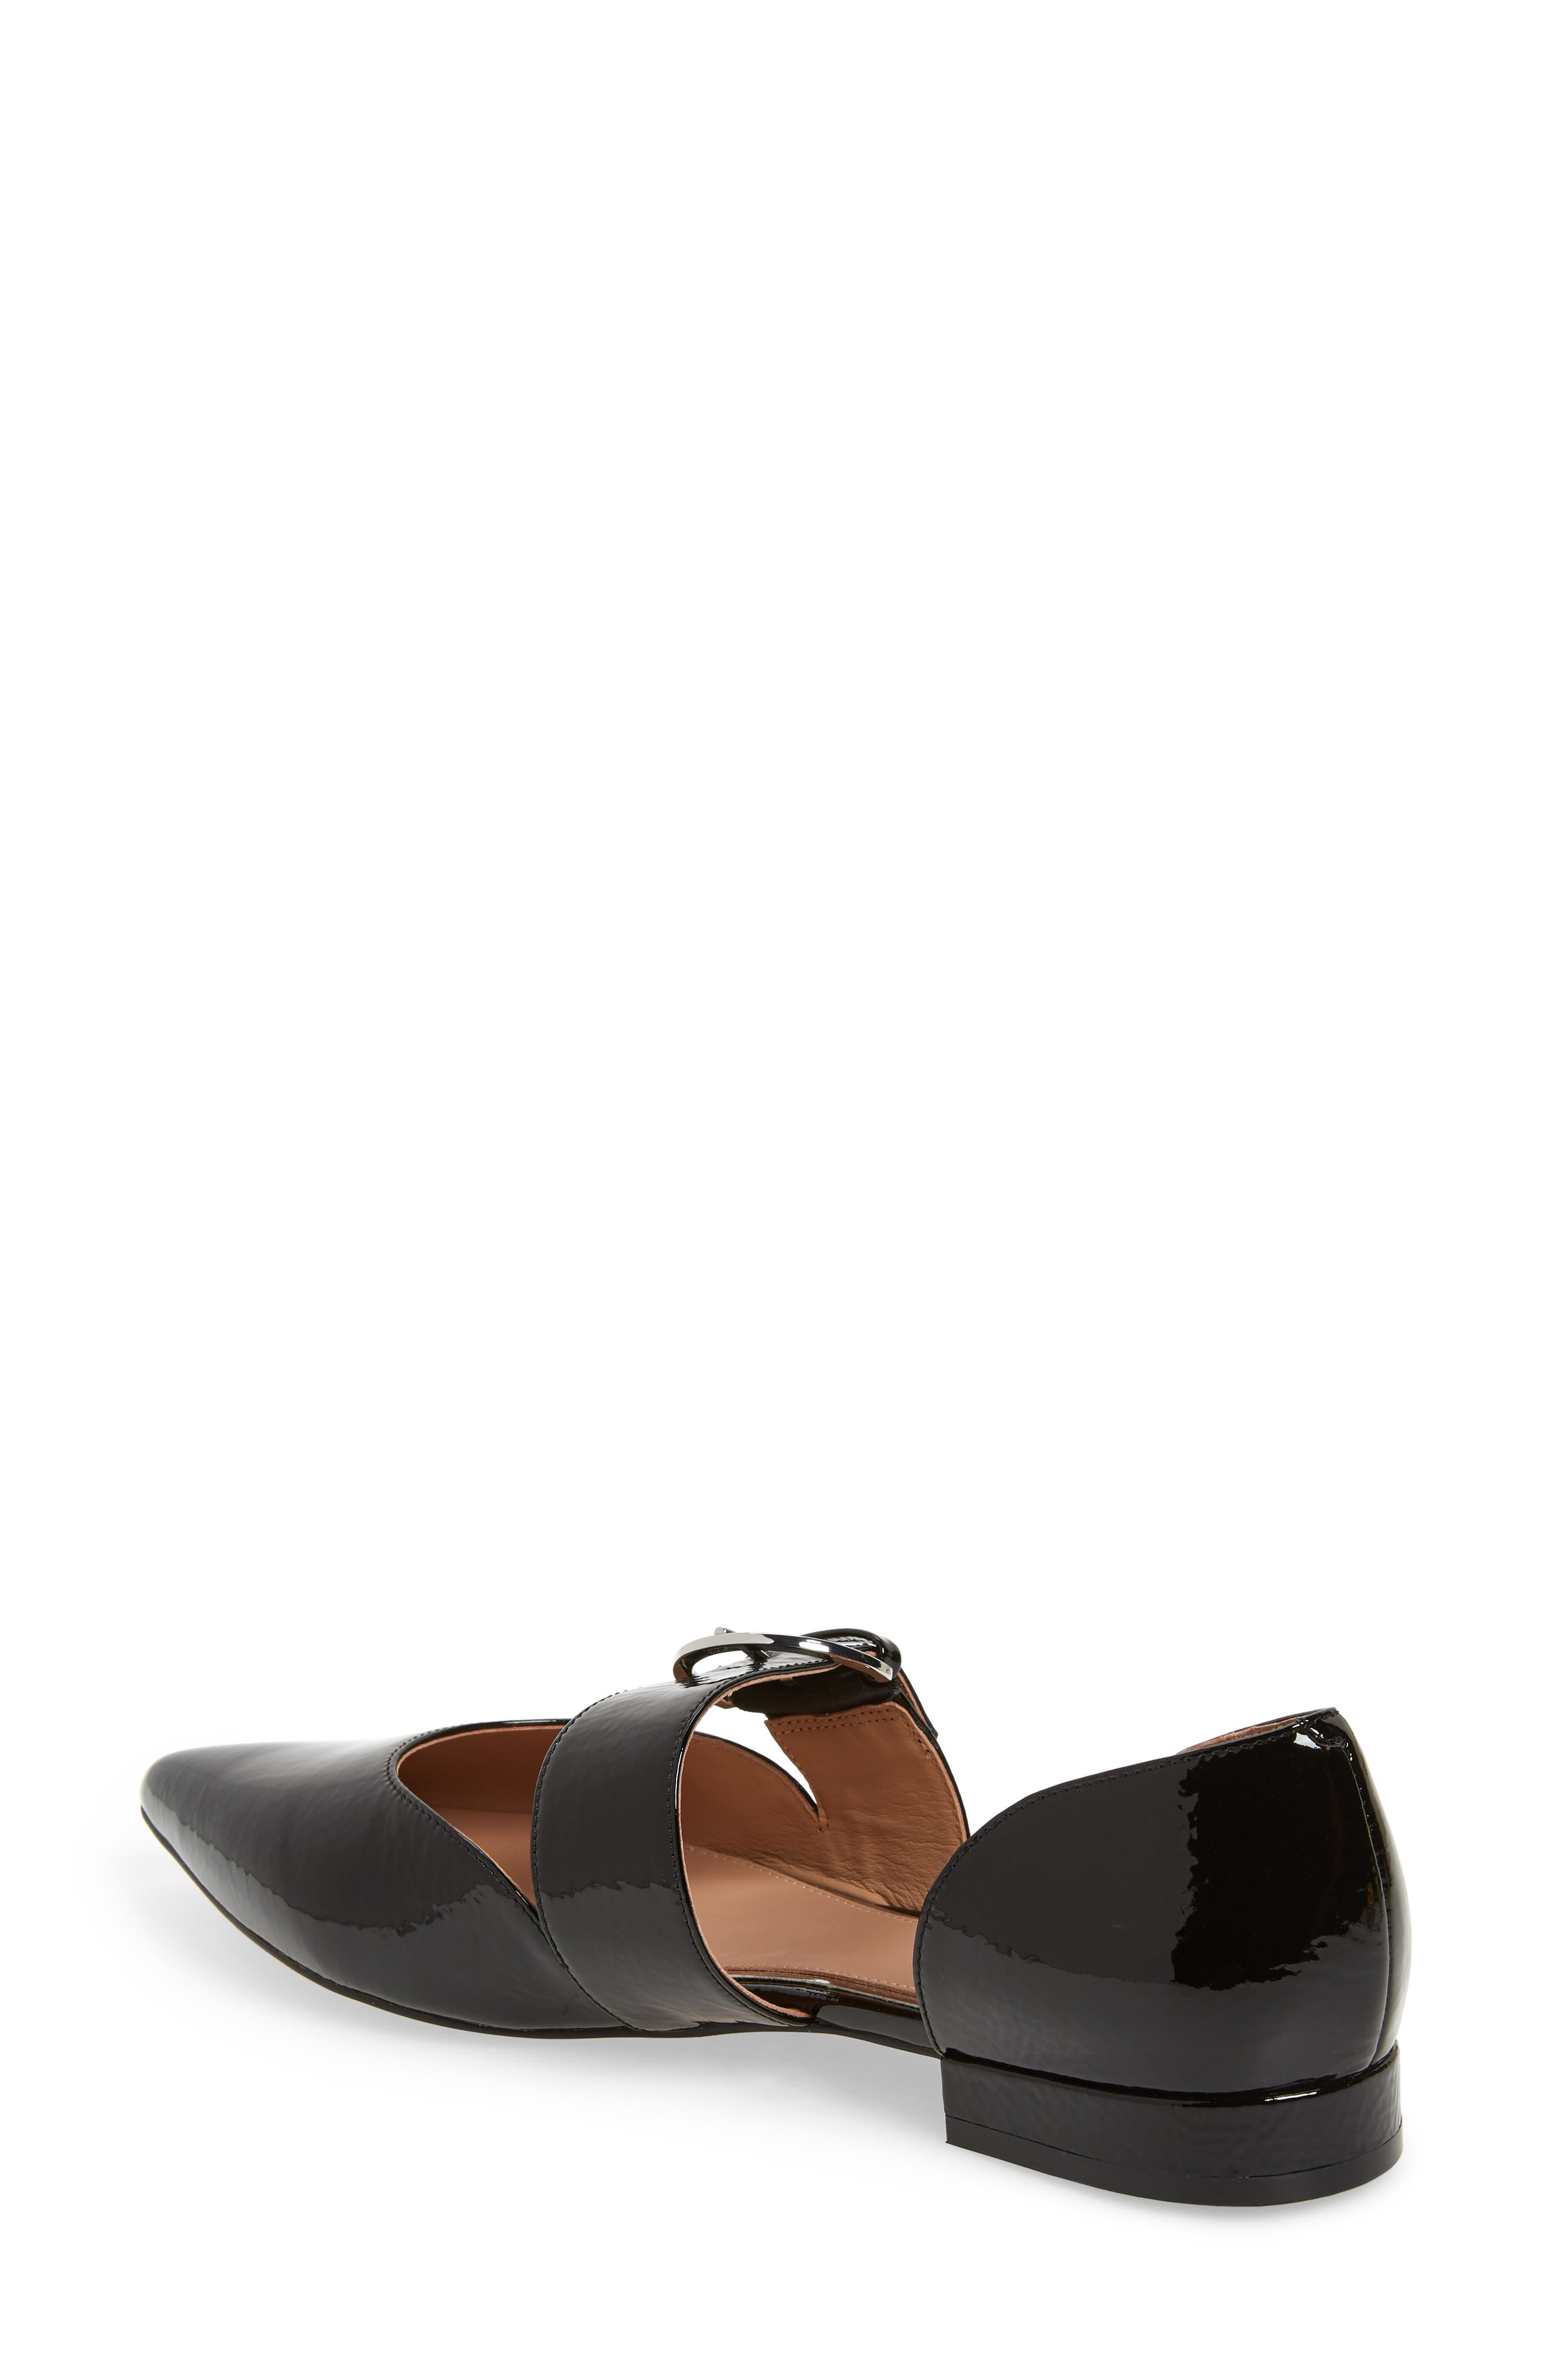 LINEA PAOLO, Dean Pointy Toe Flat, Alternate thumbnail 2, color, BLACK WRINKLE PATENT